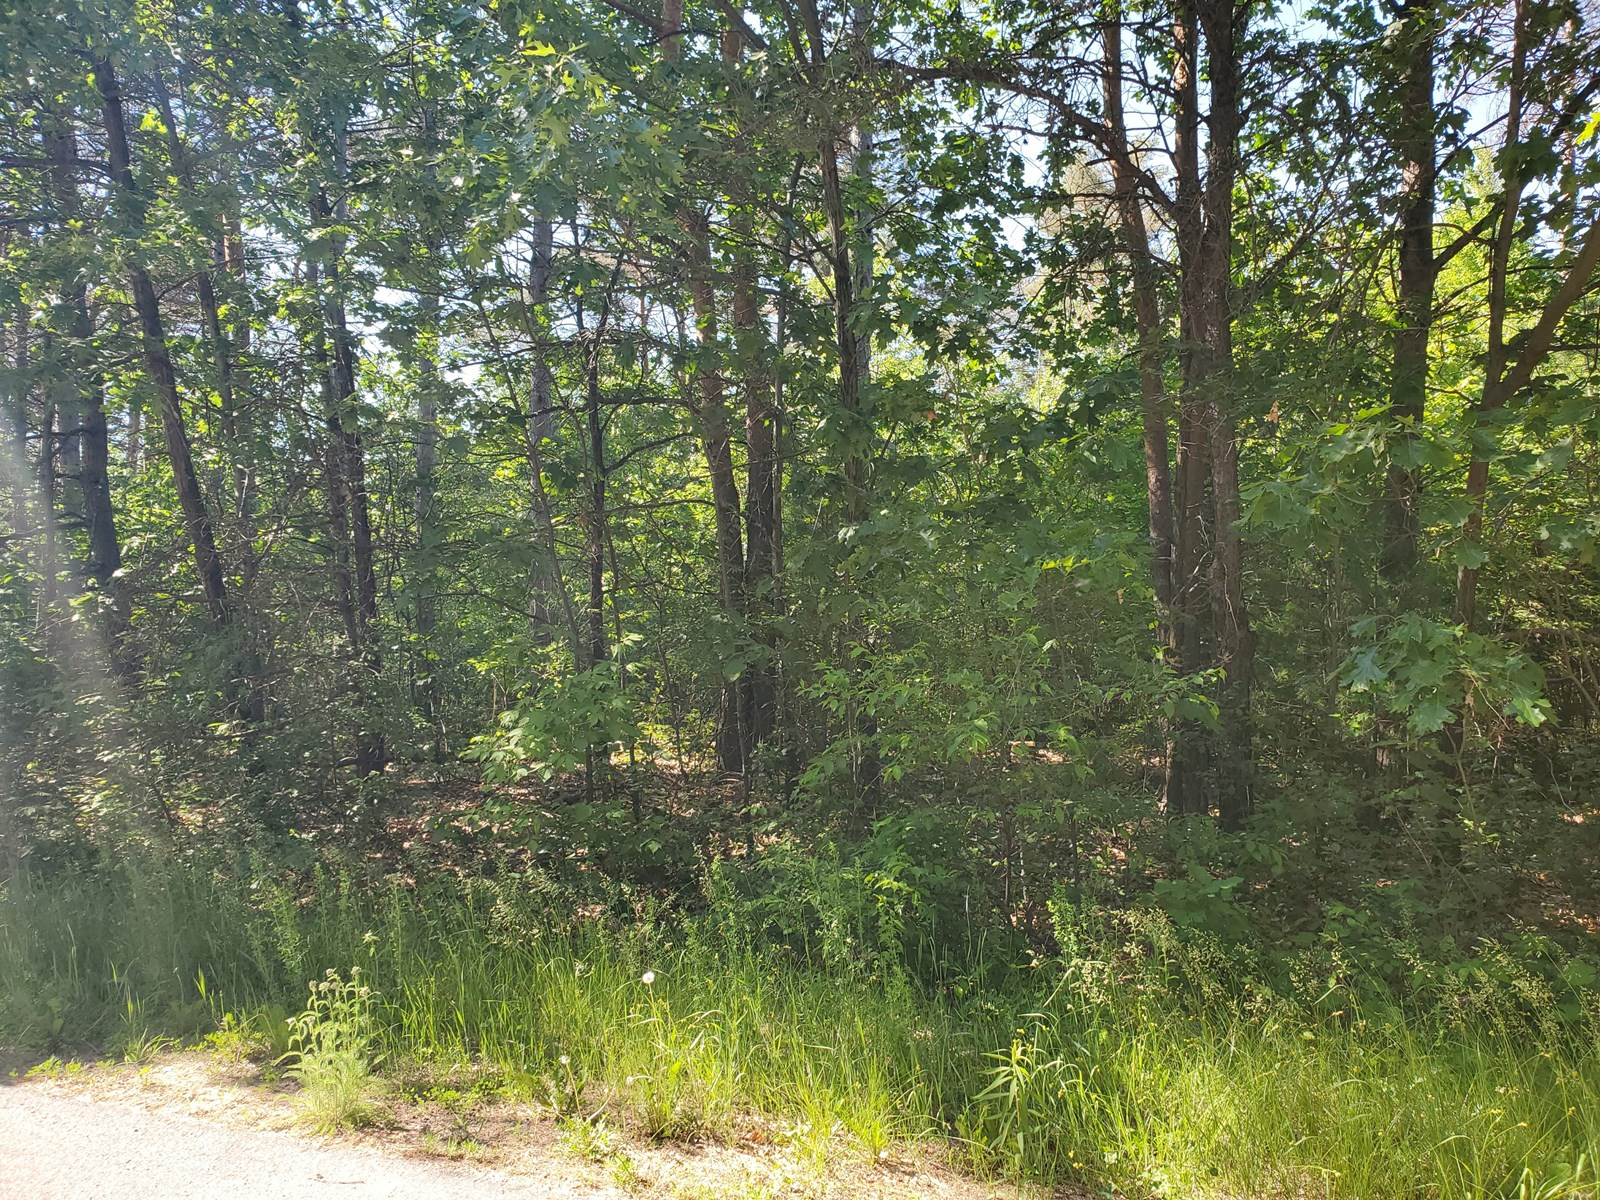 Vacant Land for Sale in Portage County, Waupaca, WI